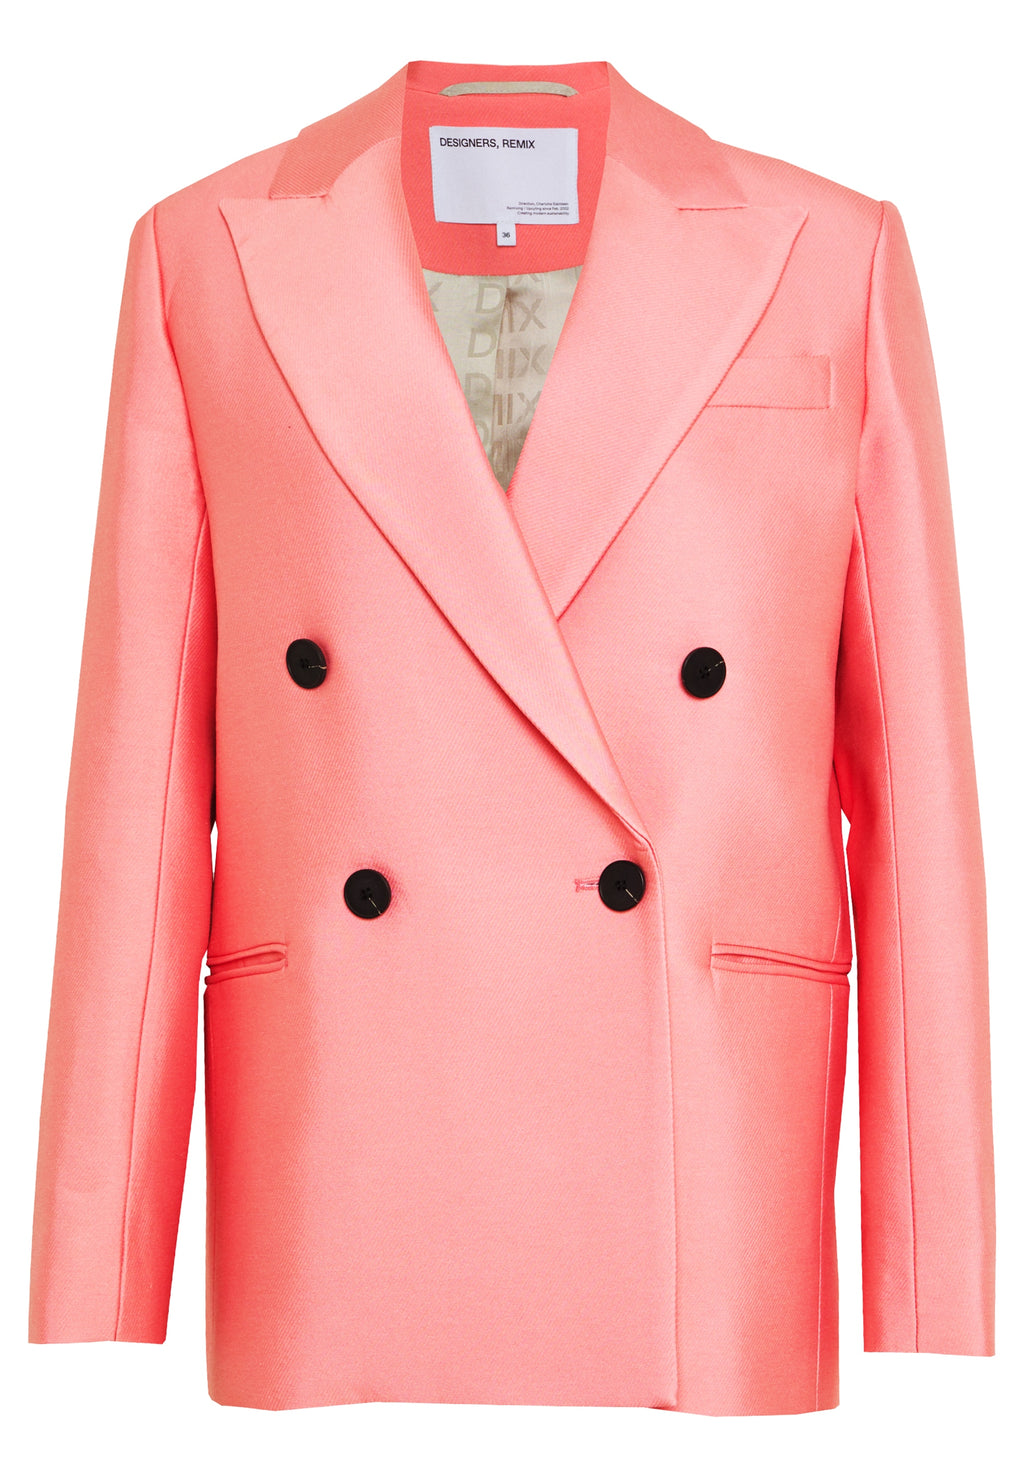 Designers Remix Hailey Recycled Cotton Double Breasted Pink Blazer, SIZE M